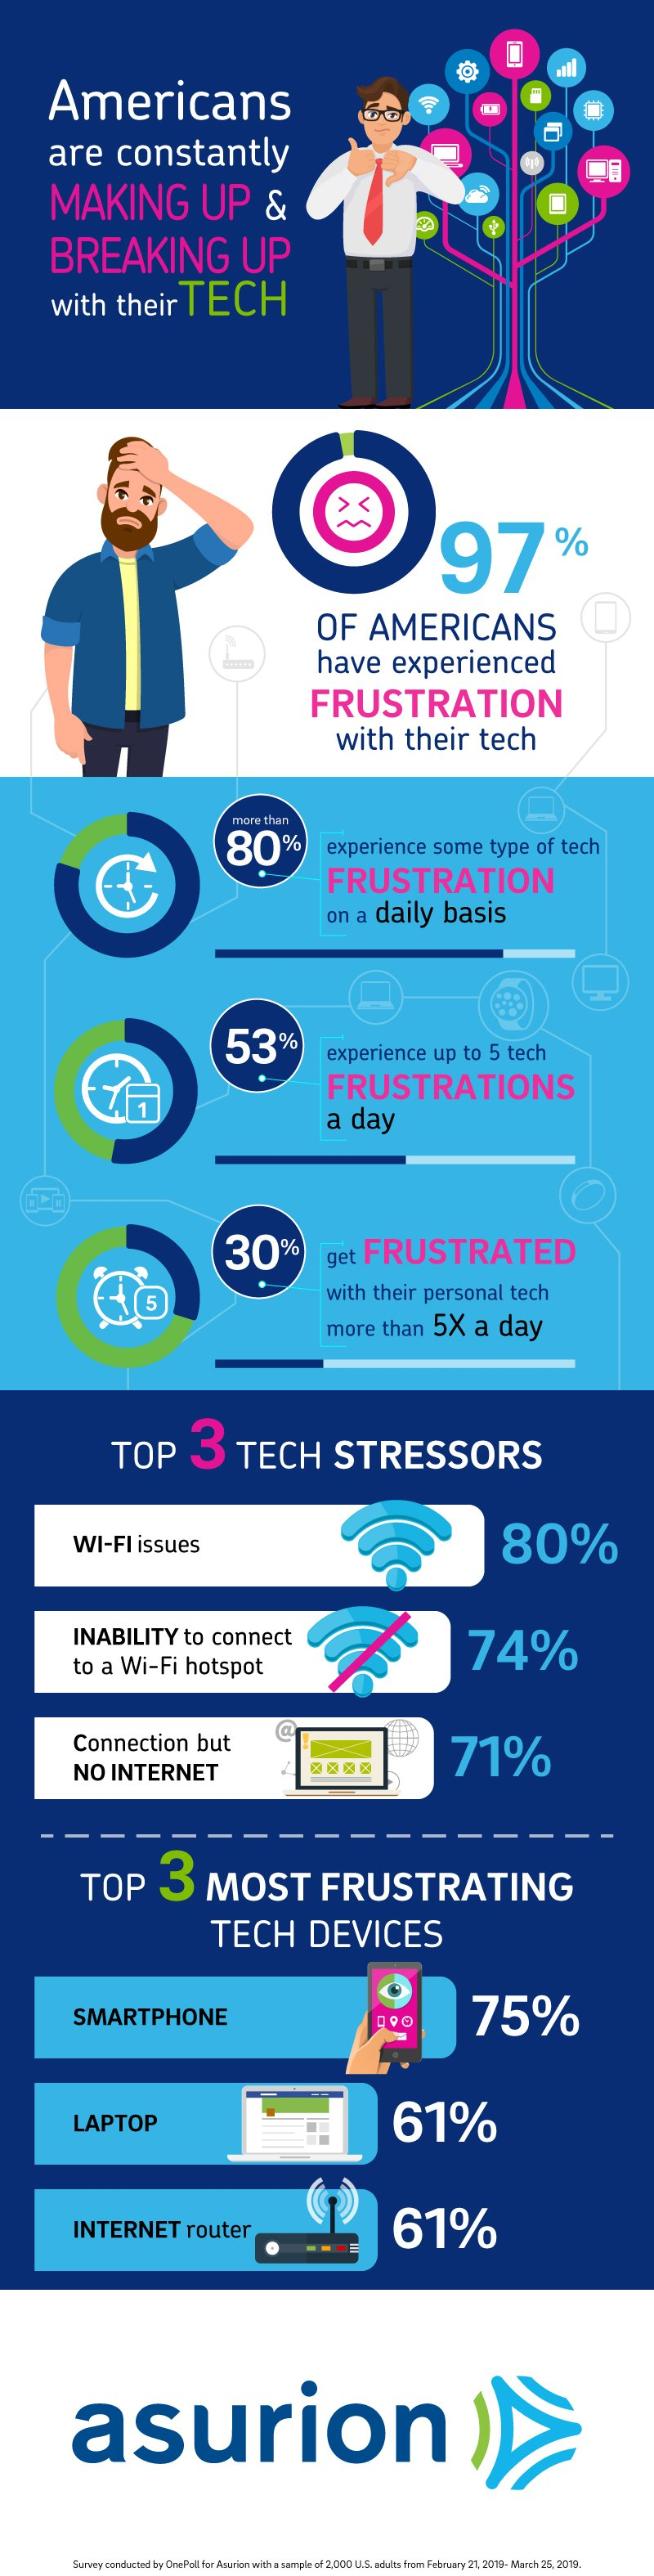 80% of Americans Experience Technology Frustration on a Daily Basis